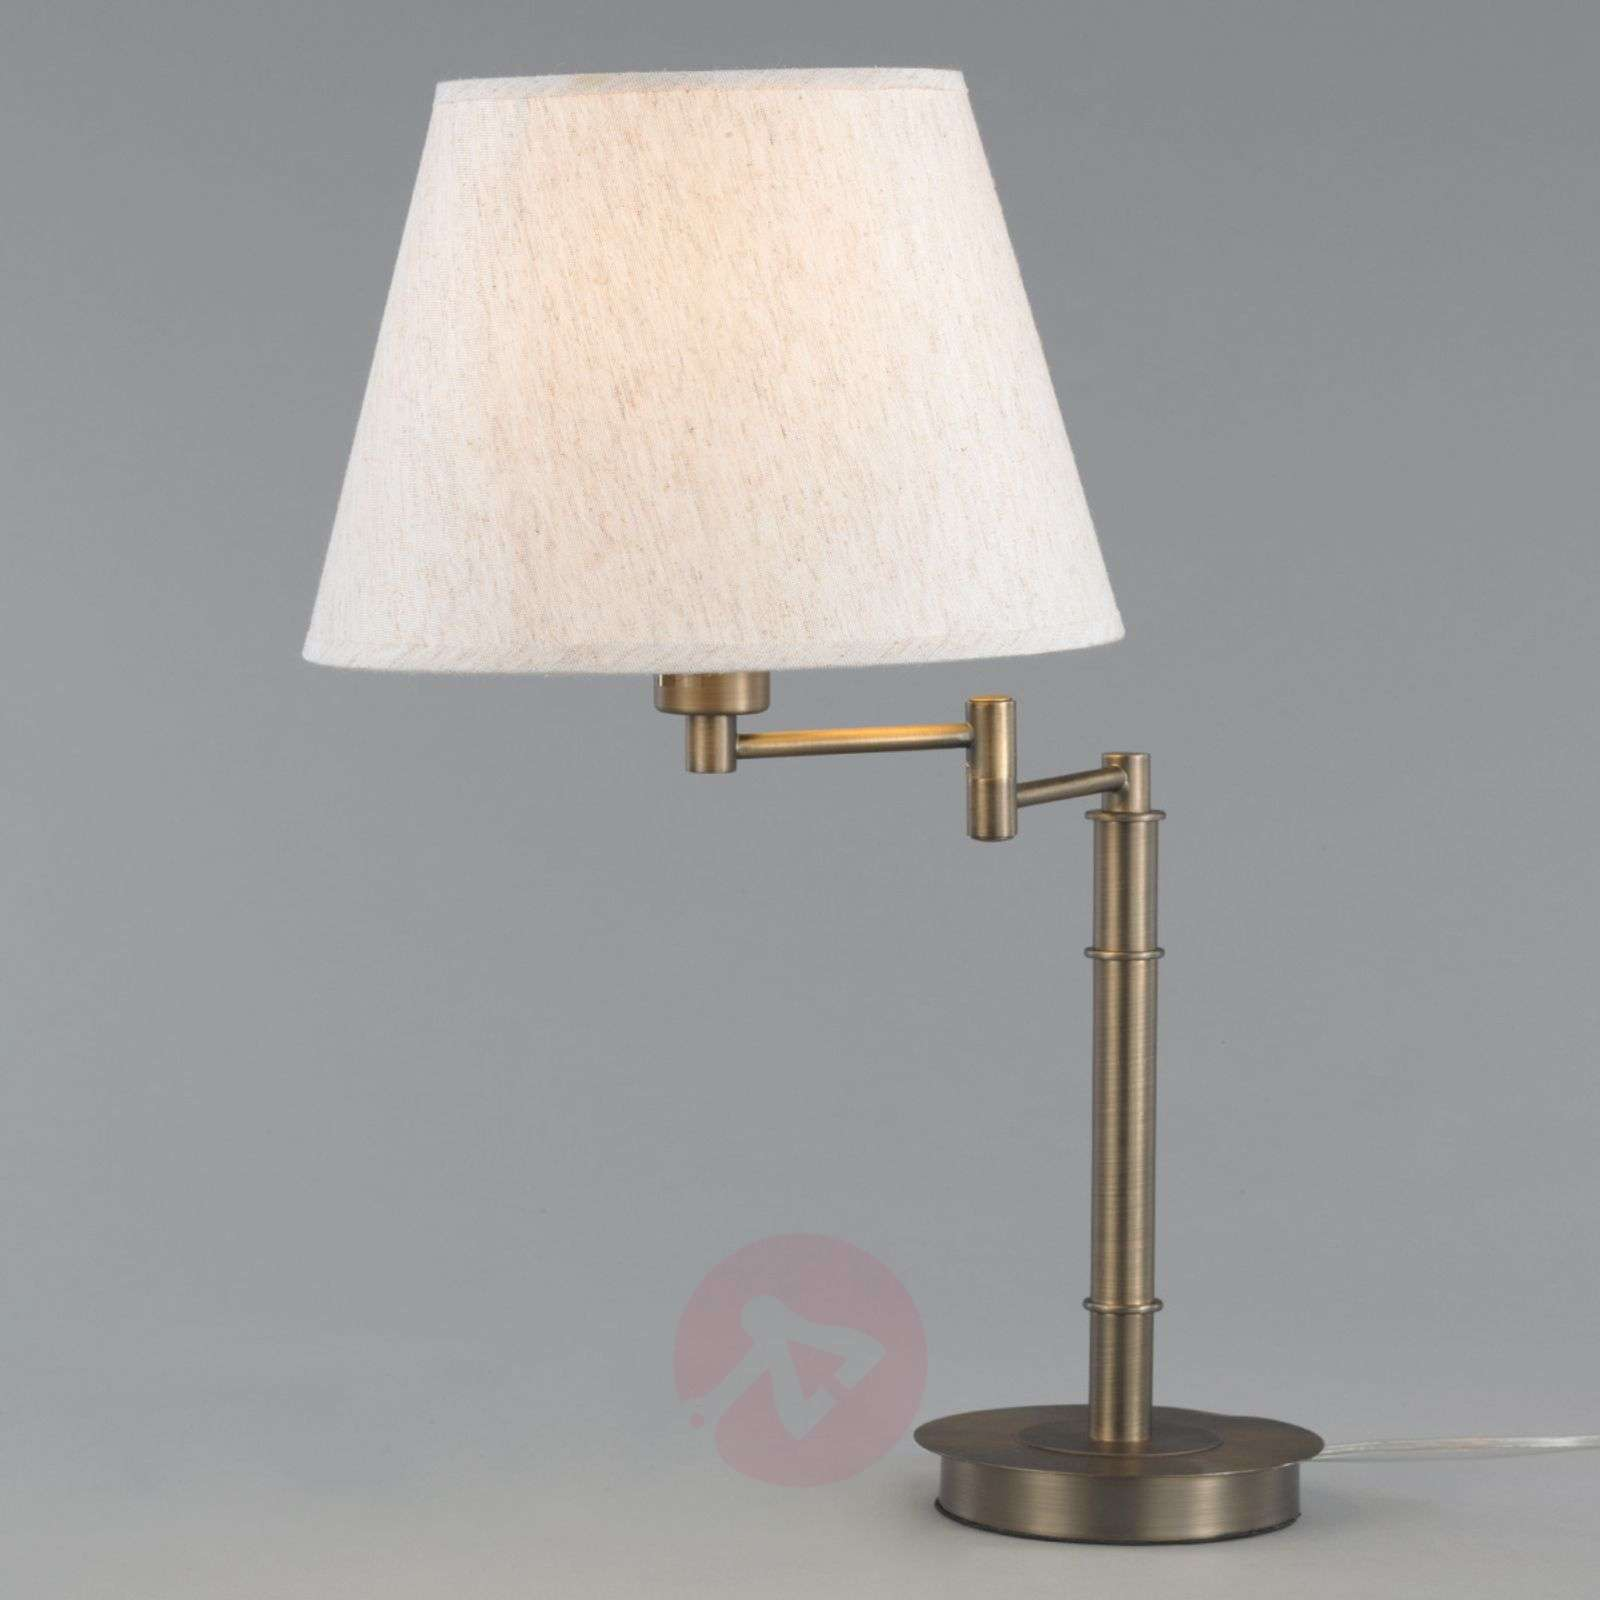 Beautiful table lamp pola bronze coloured frame lights beautiful table lamp pola bronze coloured frame 9620583 01 geotapseo Image collections